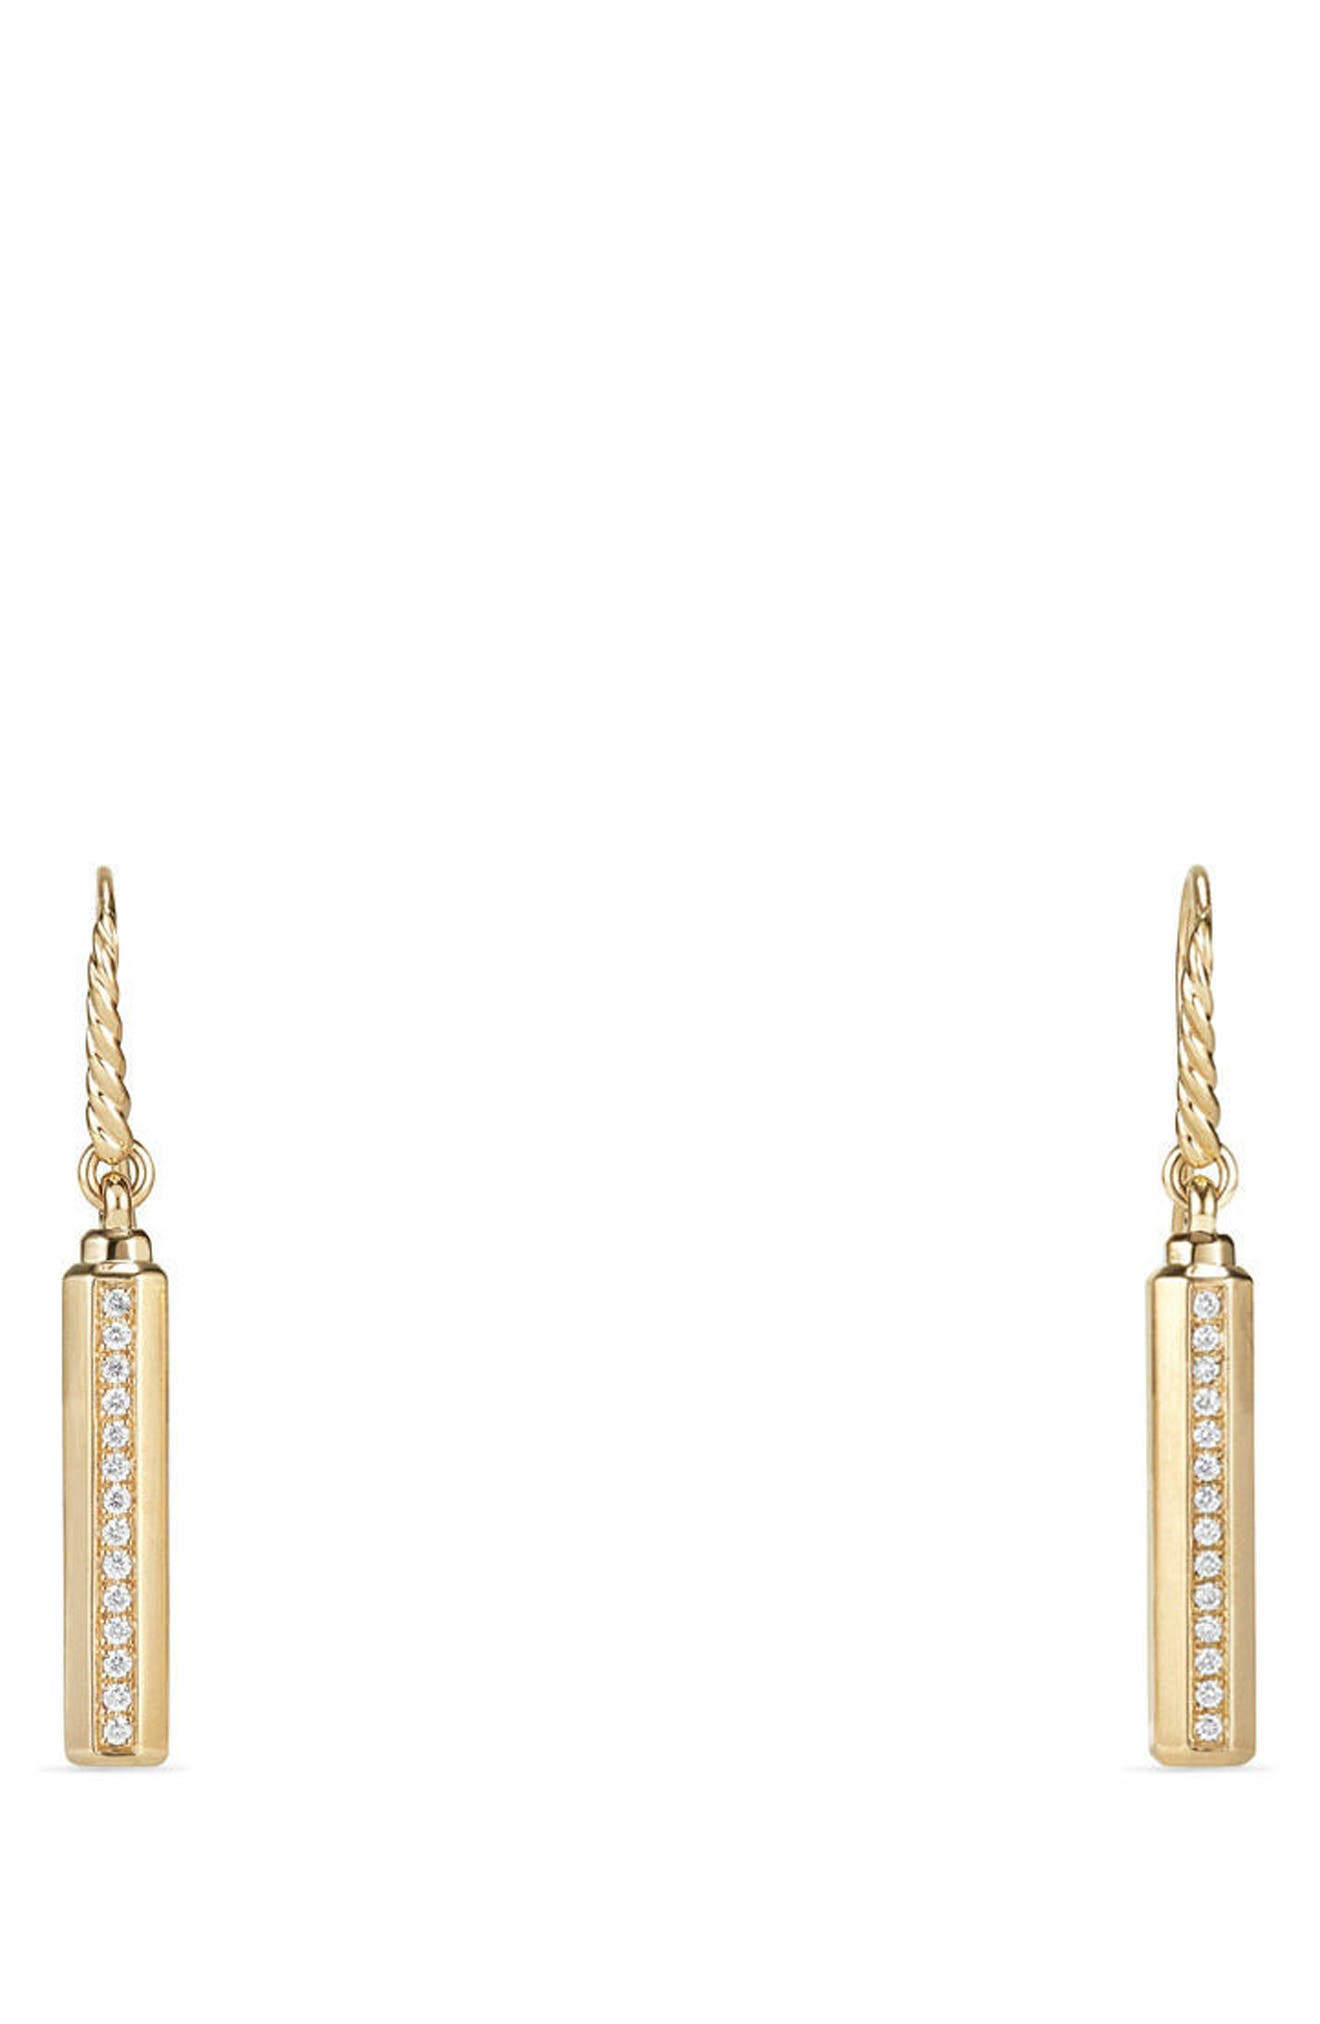 Barrels Drop Earrings with Diamonds in 18k Gold,                             Main thumbnail 1, color,                             YELLOW GOLD